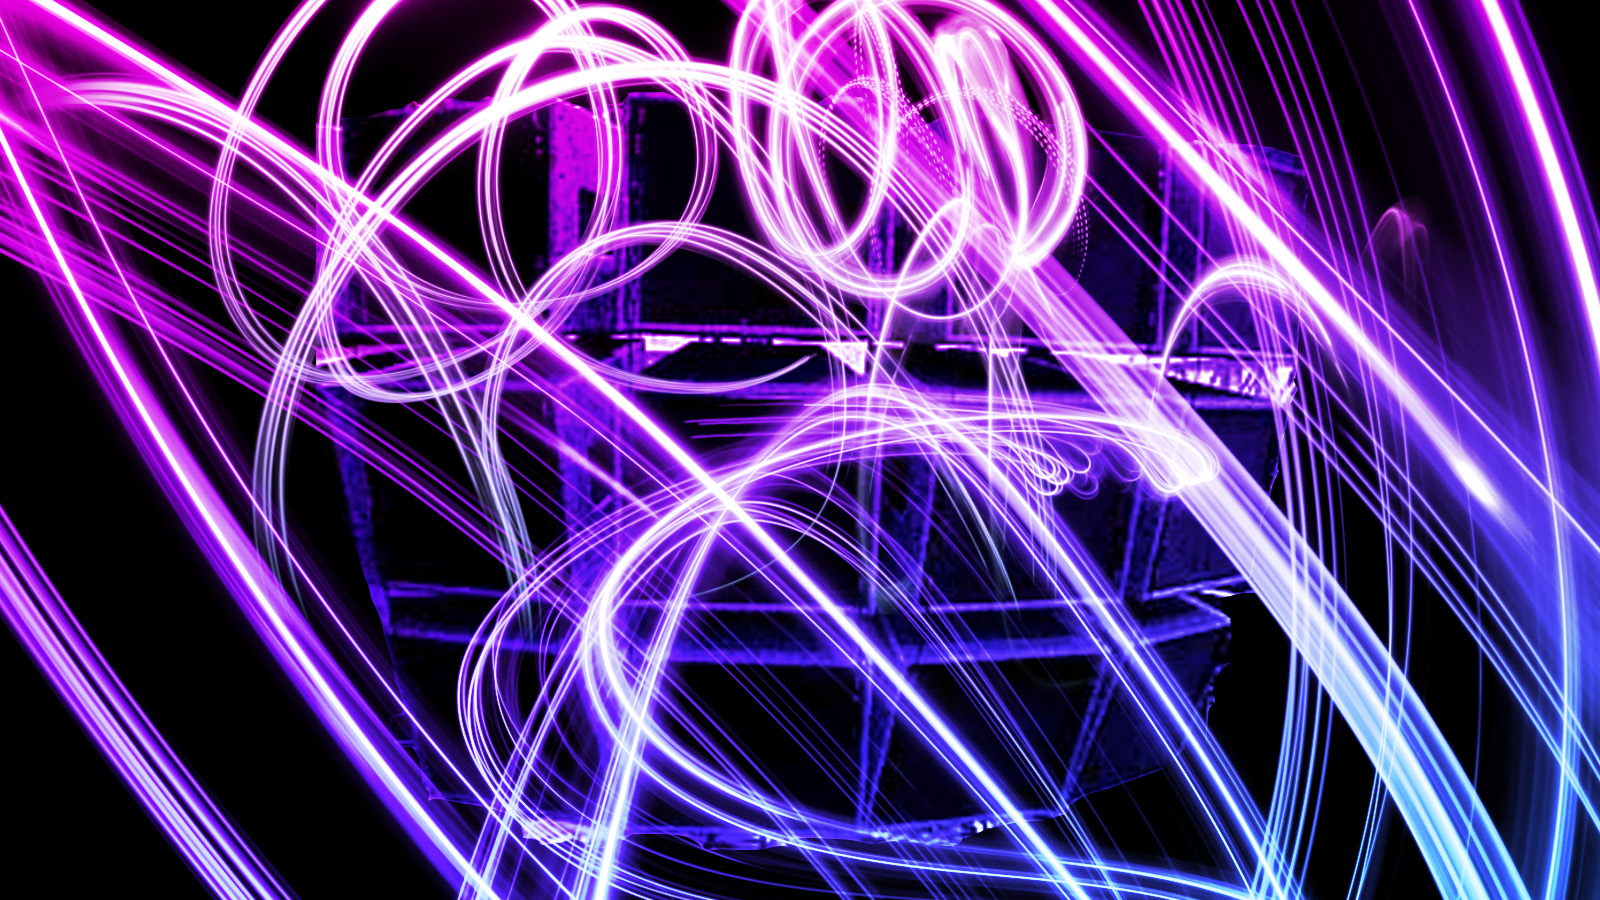 Neon lights background by Joe Chacho 1600x900